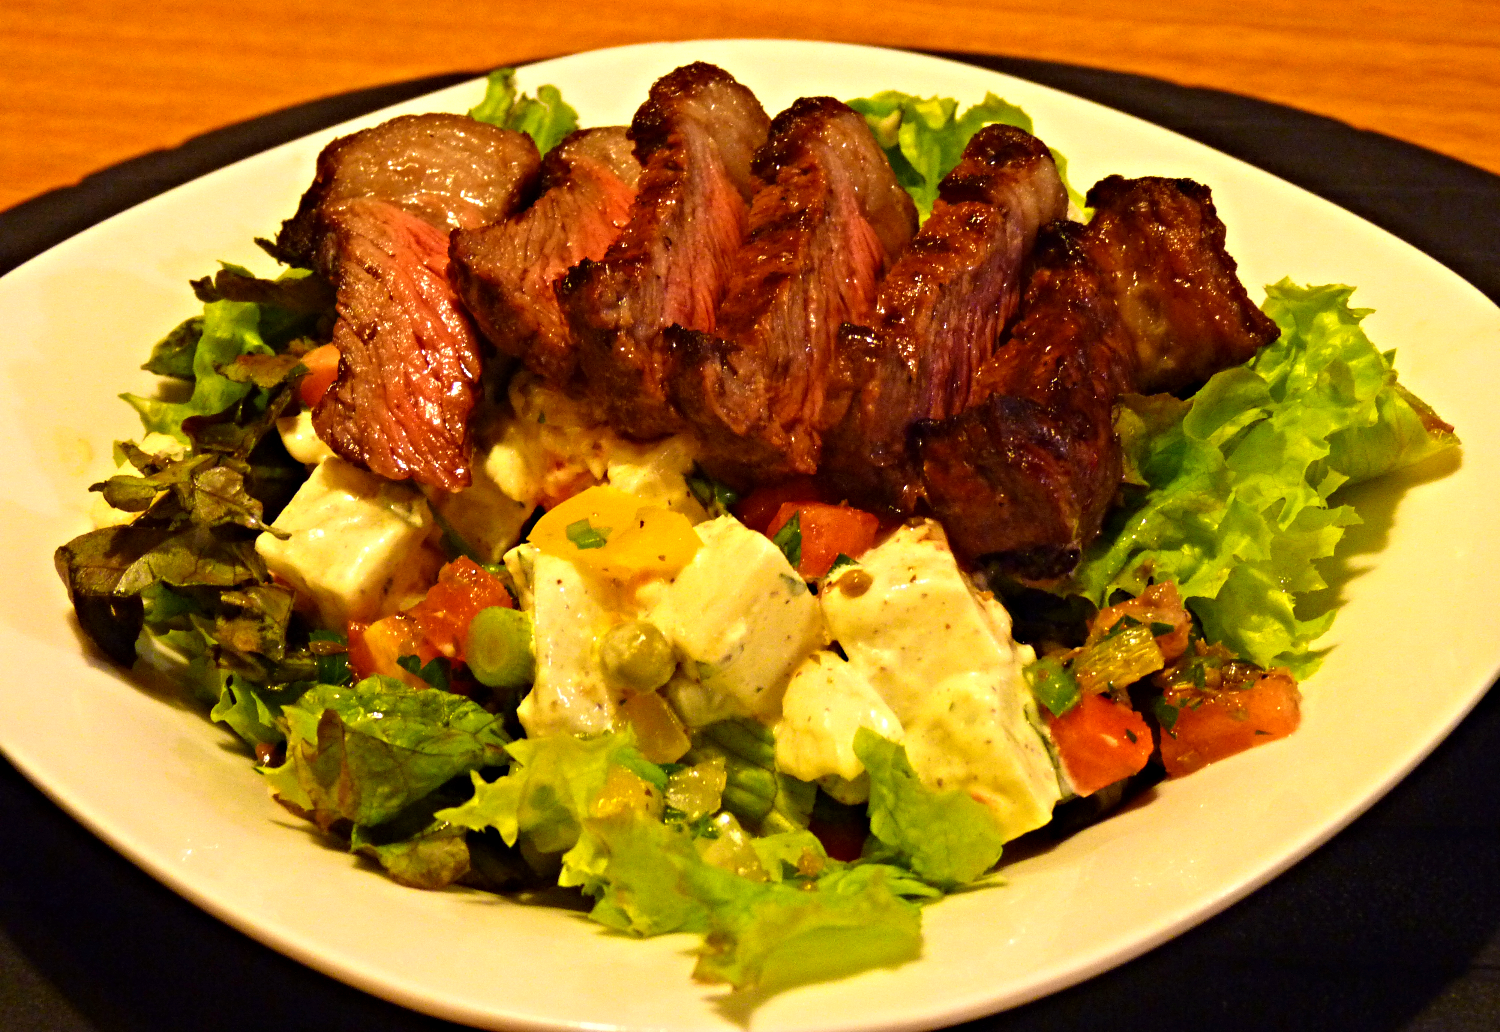 Salad Meal featuring Picanha